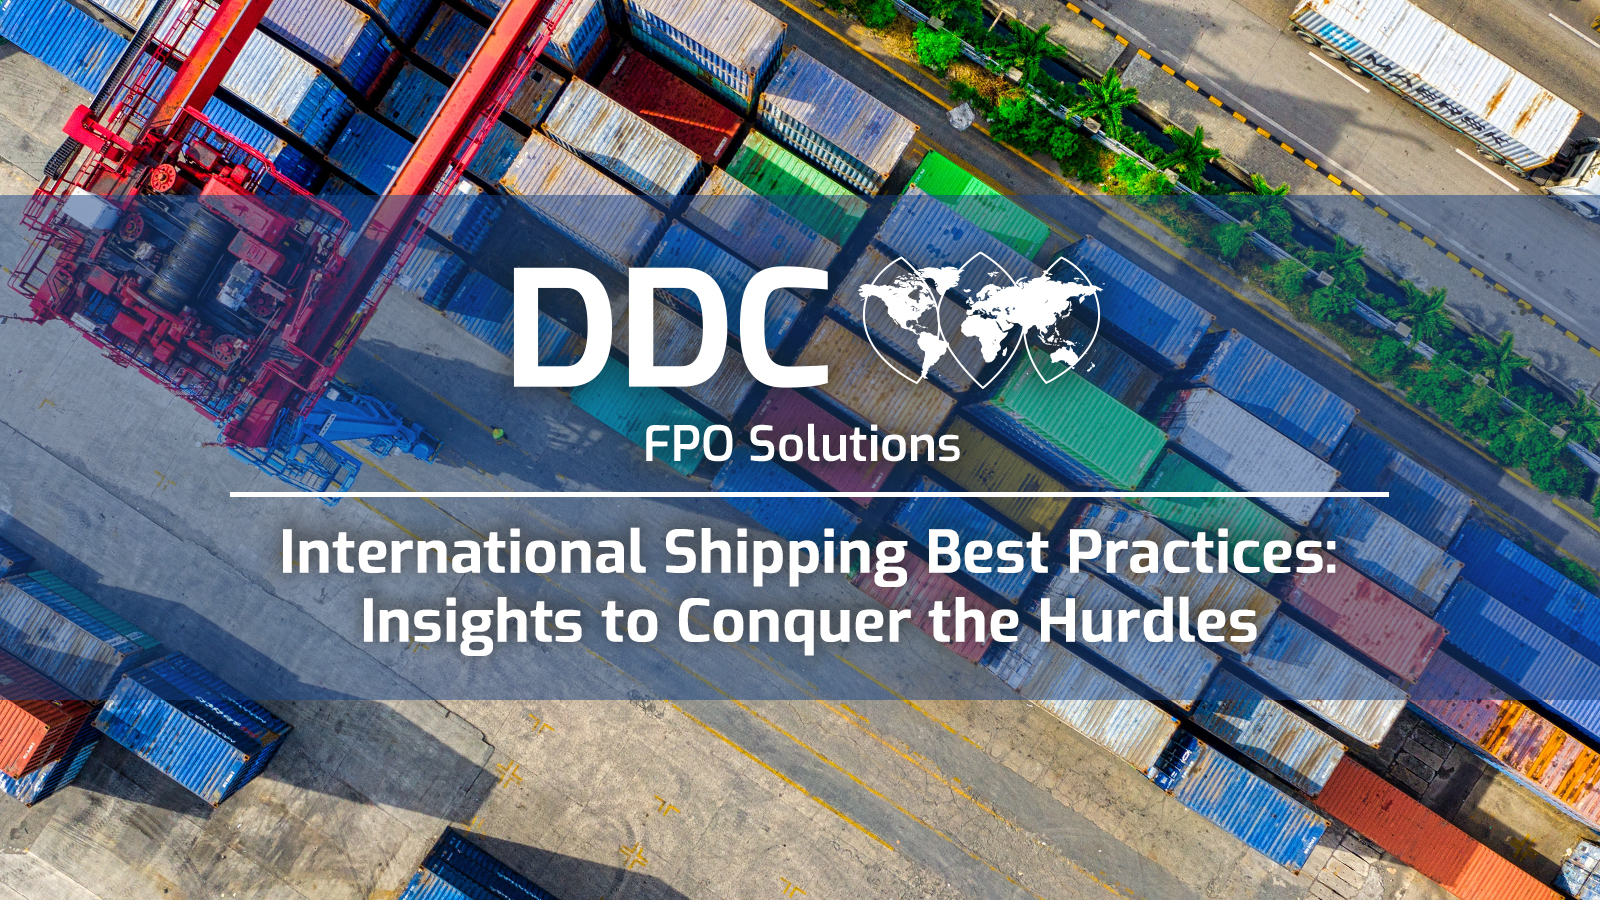 International Shipping Best Practices: Insights to Conquer the Hurdles